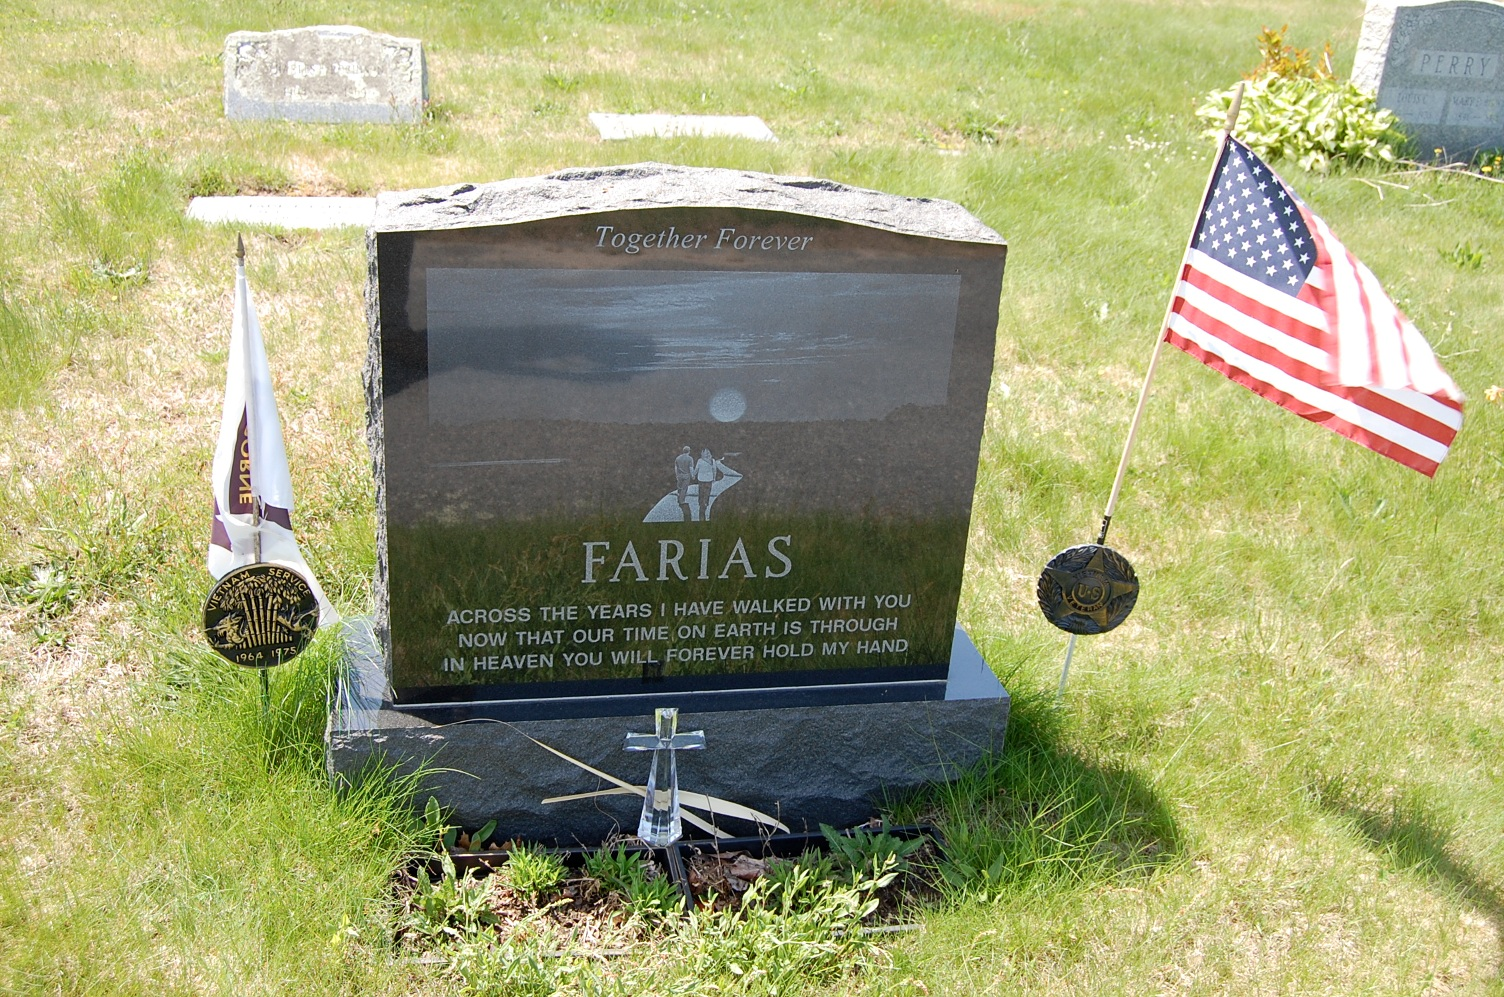 Interred Image: A3-70.jpg